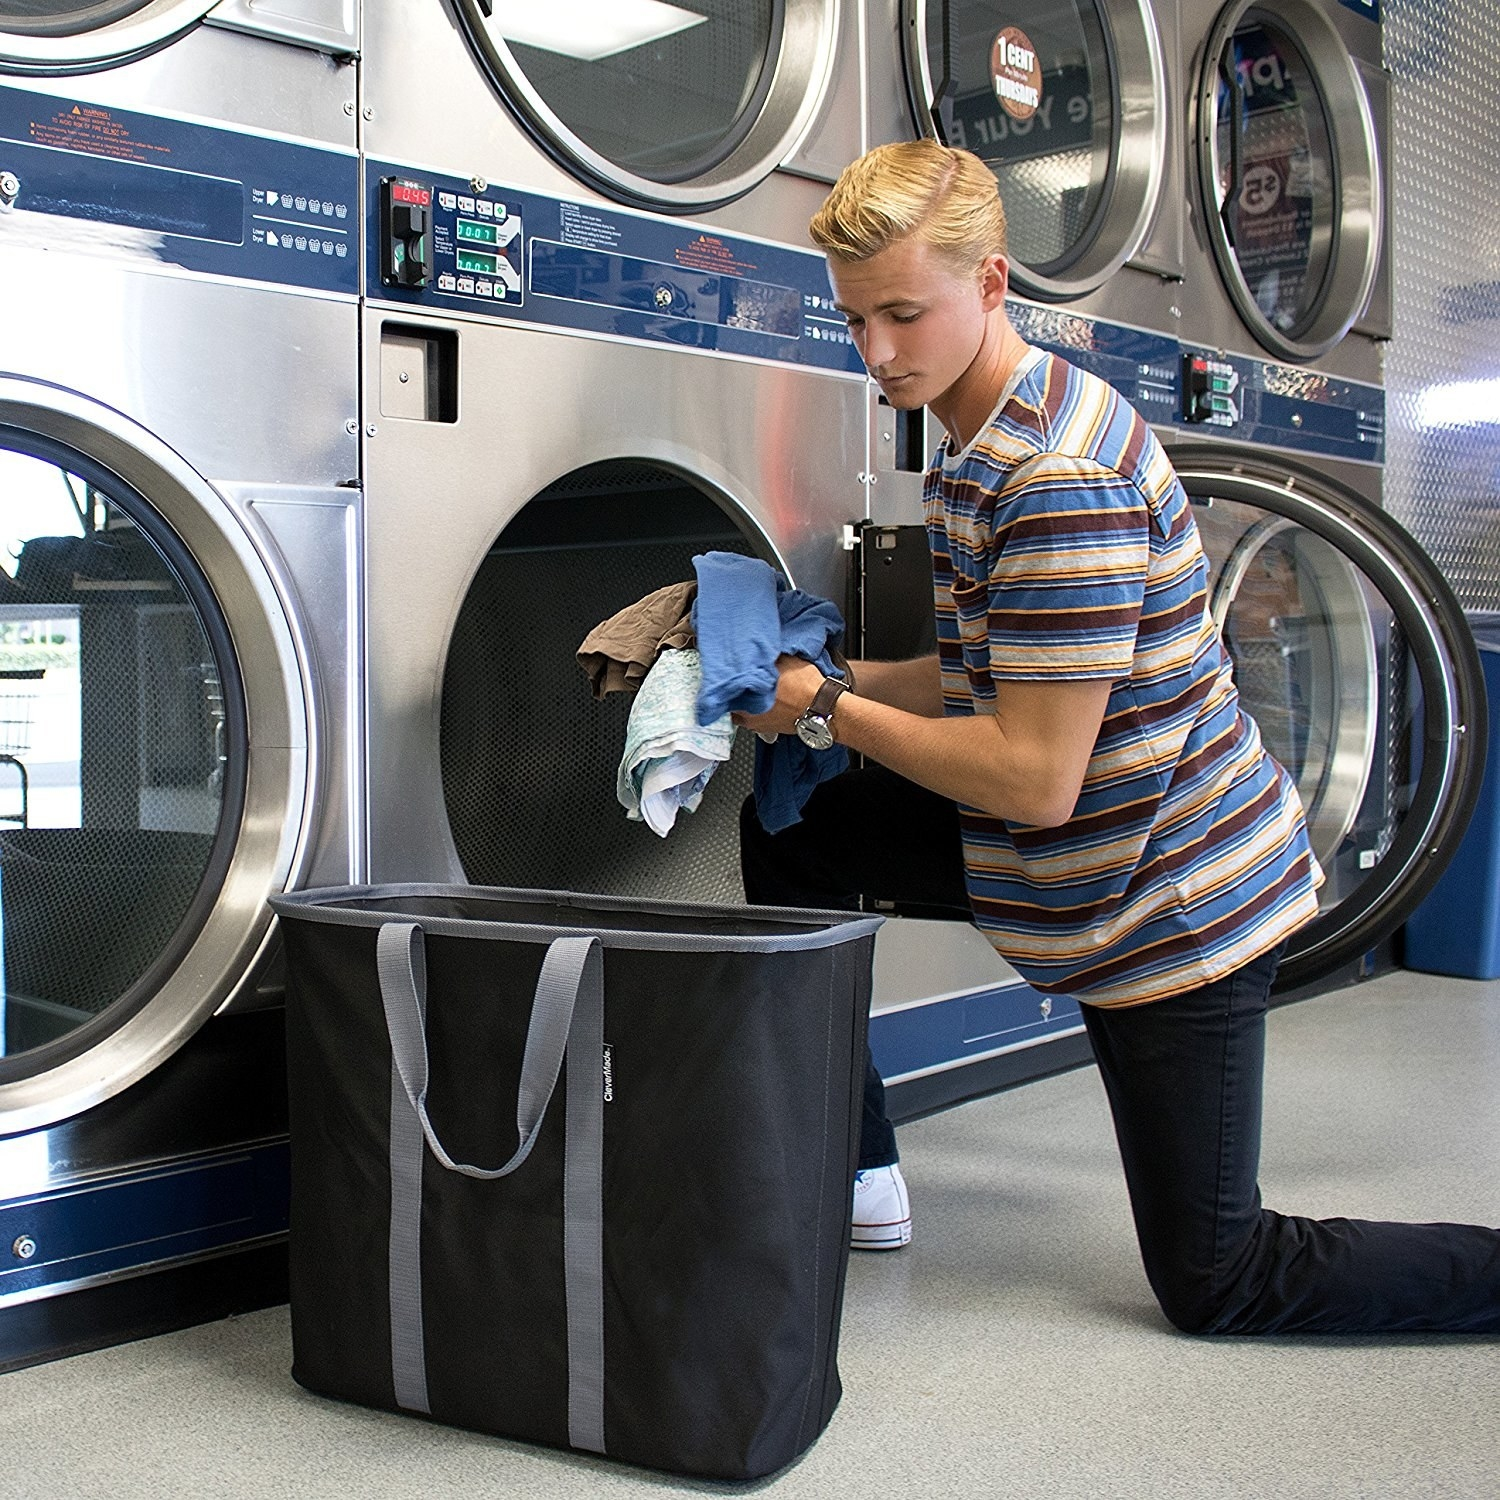 person pulling stuff from the laundry tote to put in a washer in a laundromat